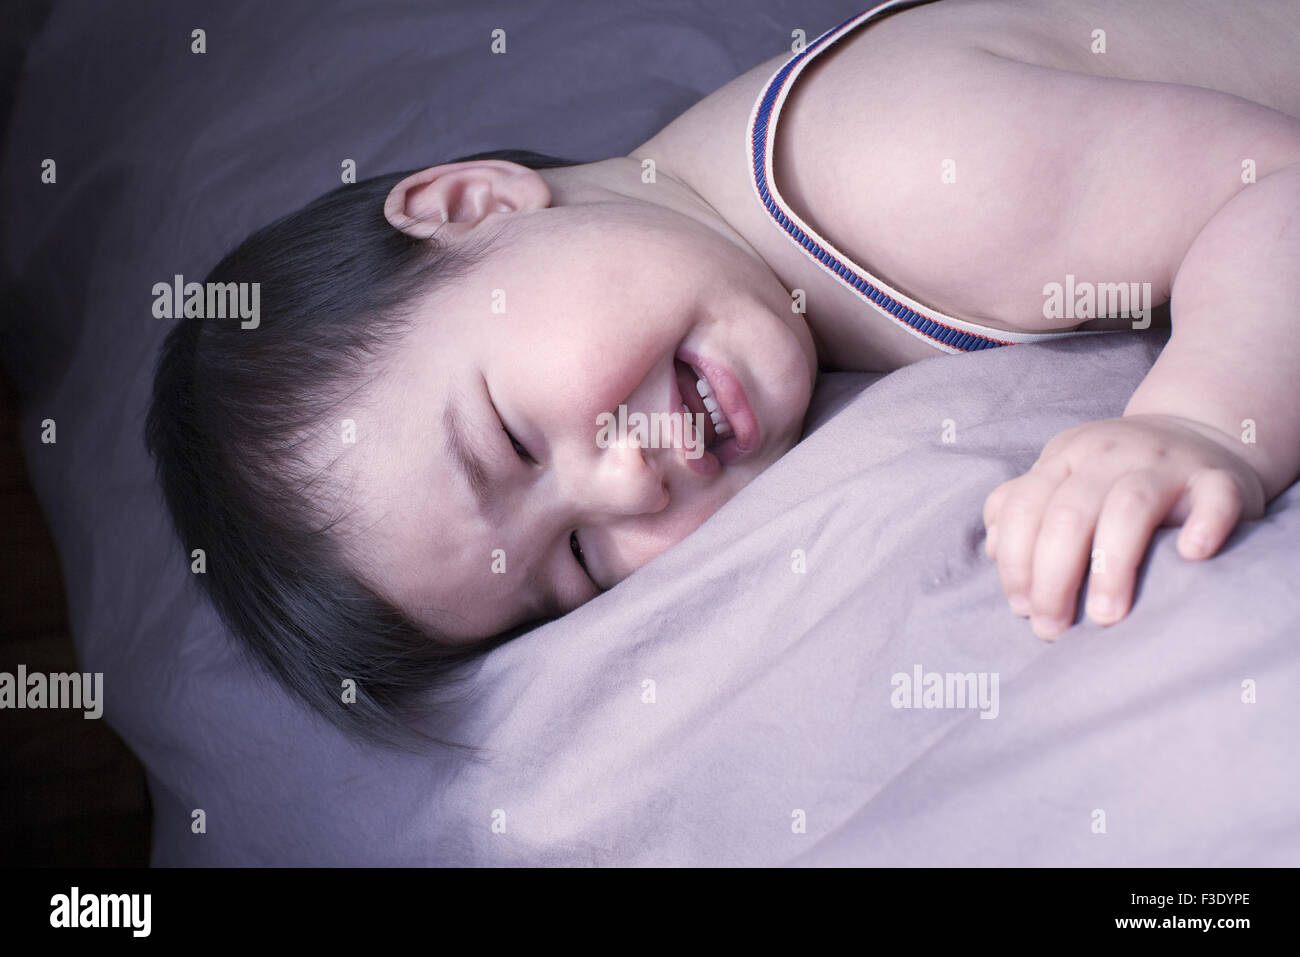 Baby boy crying on bed - Stock Image